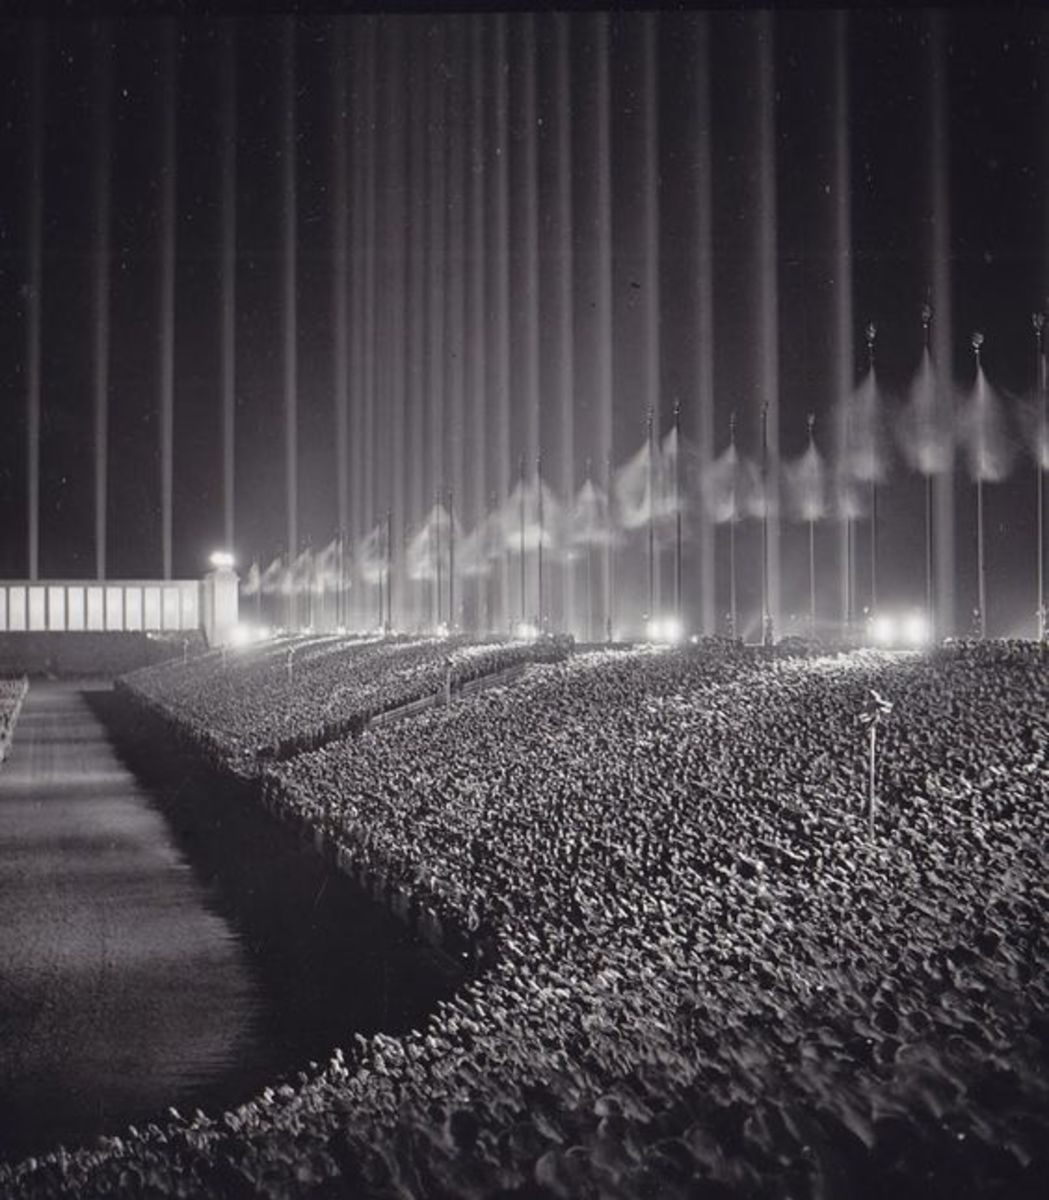 Nazi rally in the Cathedral of Light - 1937. This events was designed by Albert Speer